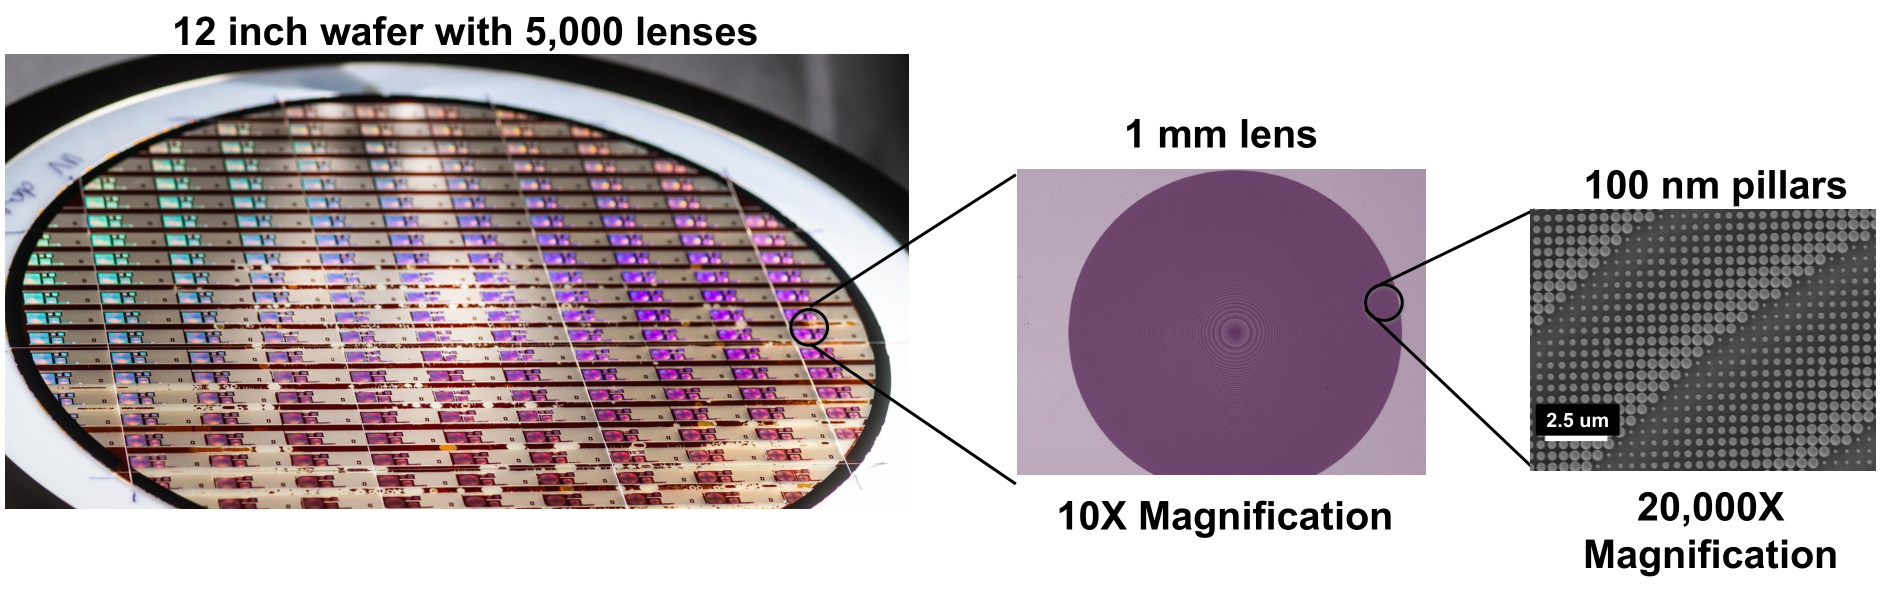 Diagram showing chips being manufactured, then an extreme close up showing nano-scale features.